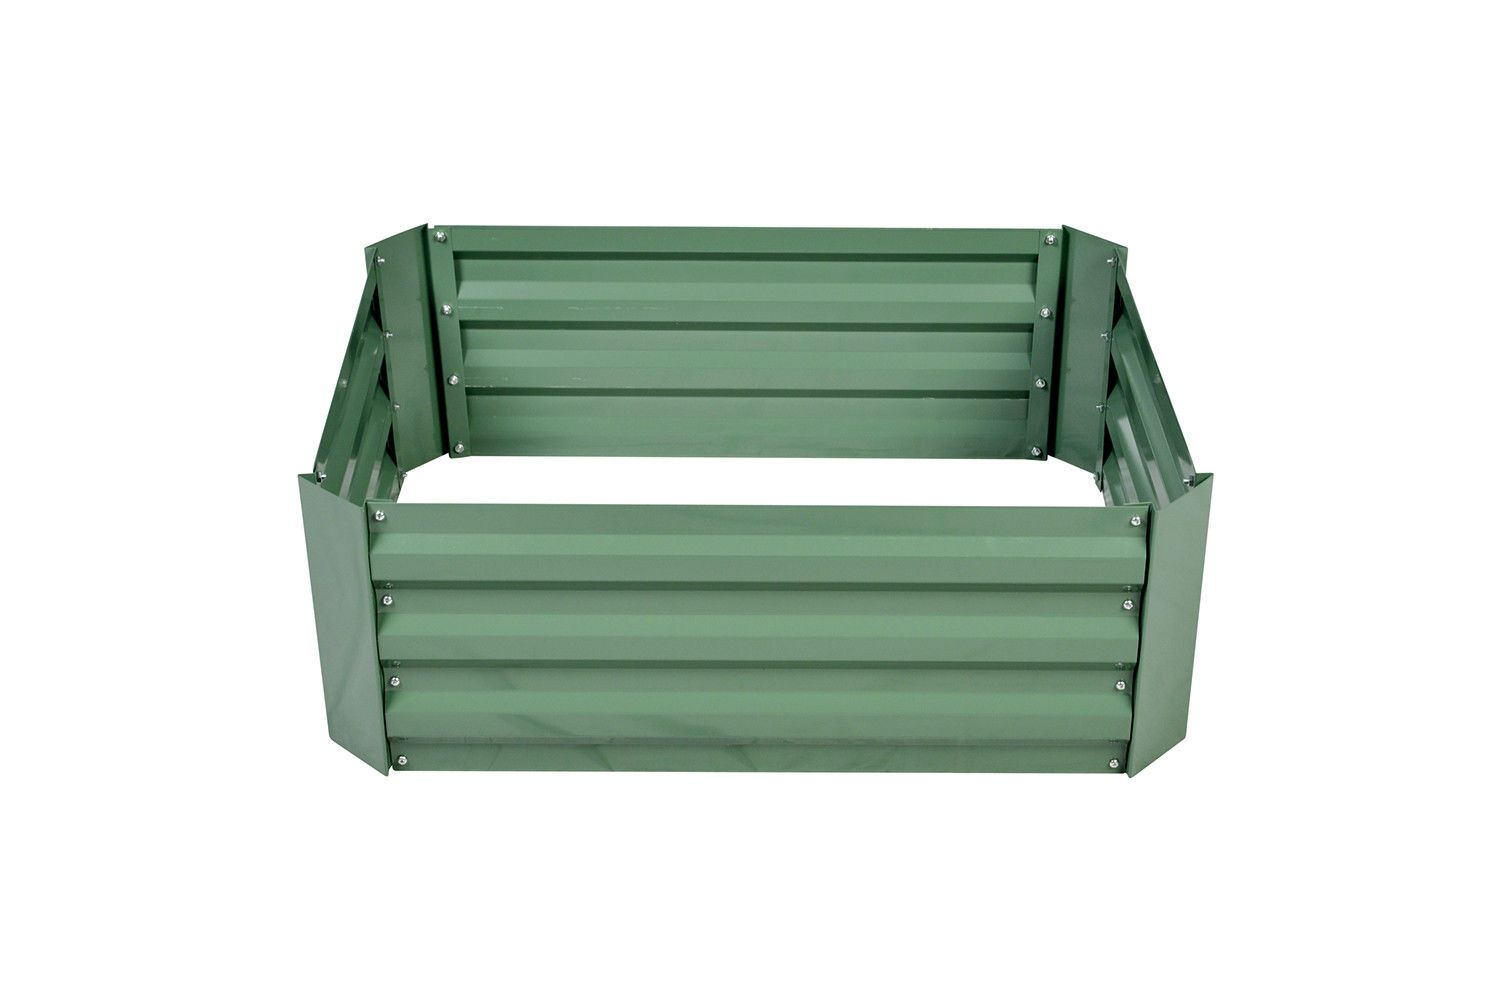 Galvanized Metal Raised Garden Bed Patio Vegetable Flower Planter Gardening by